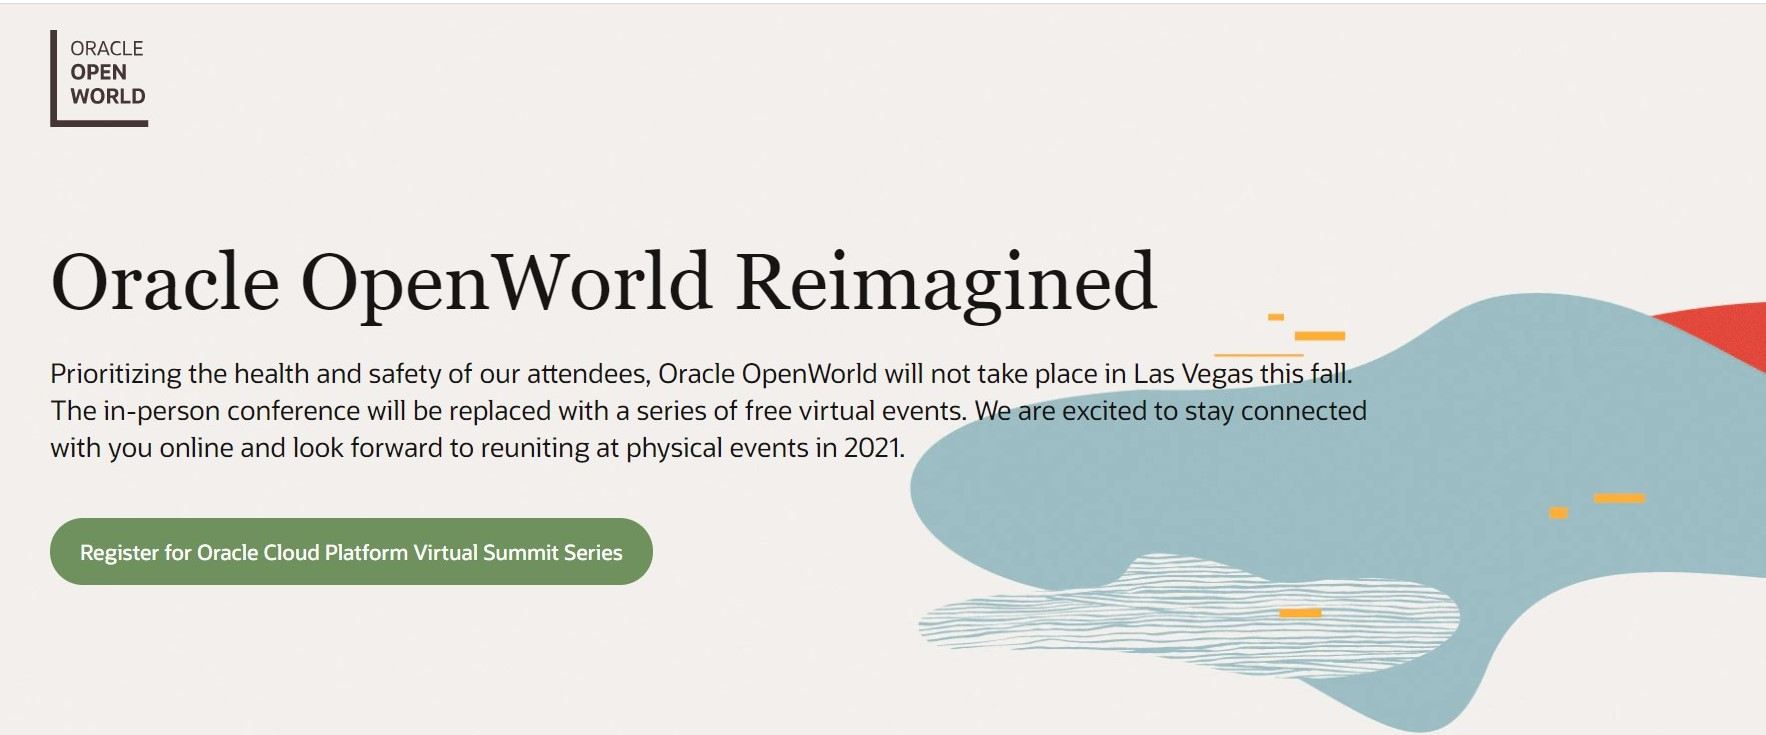 Oracle Open World Reimagined